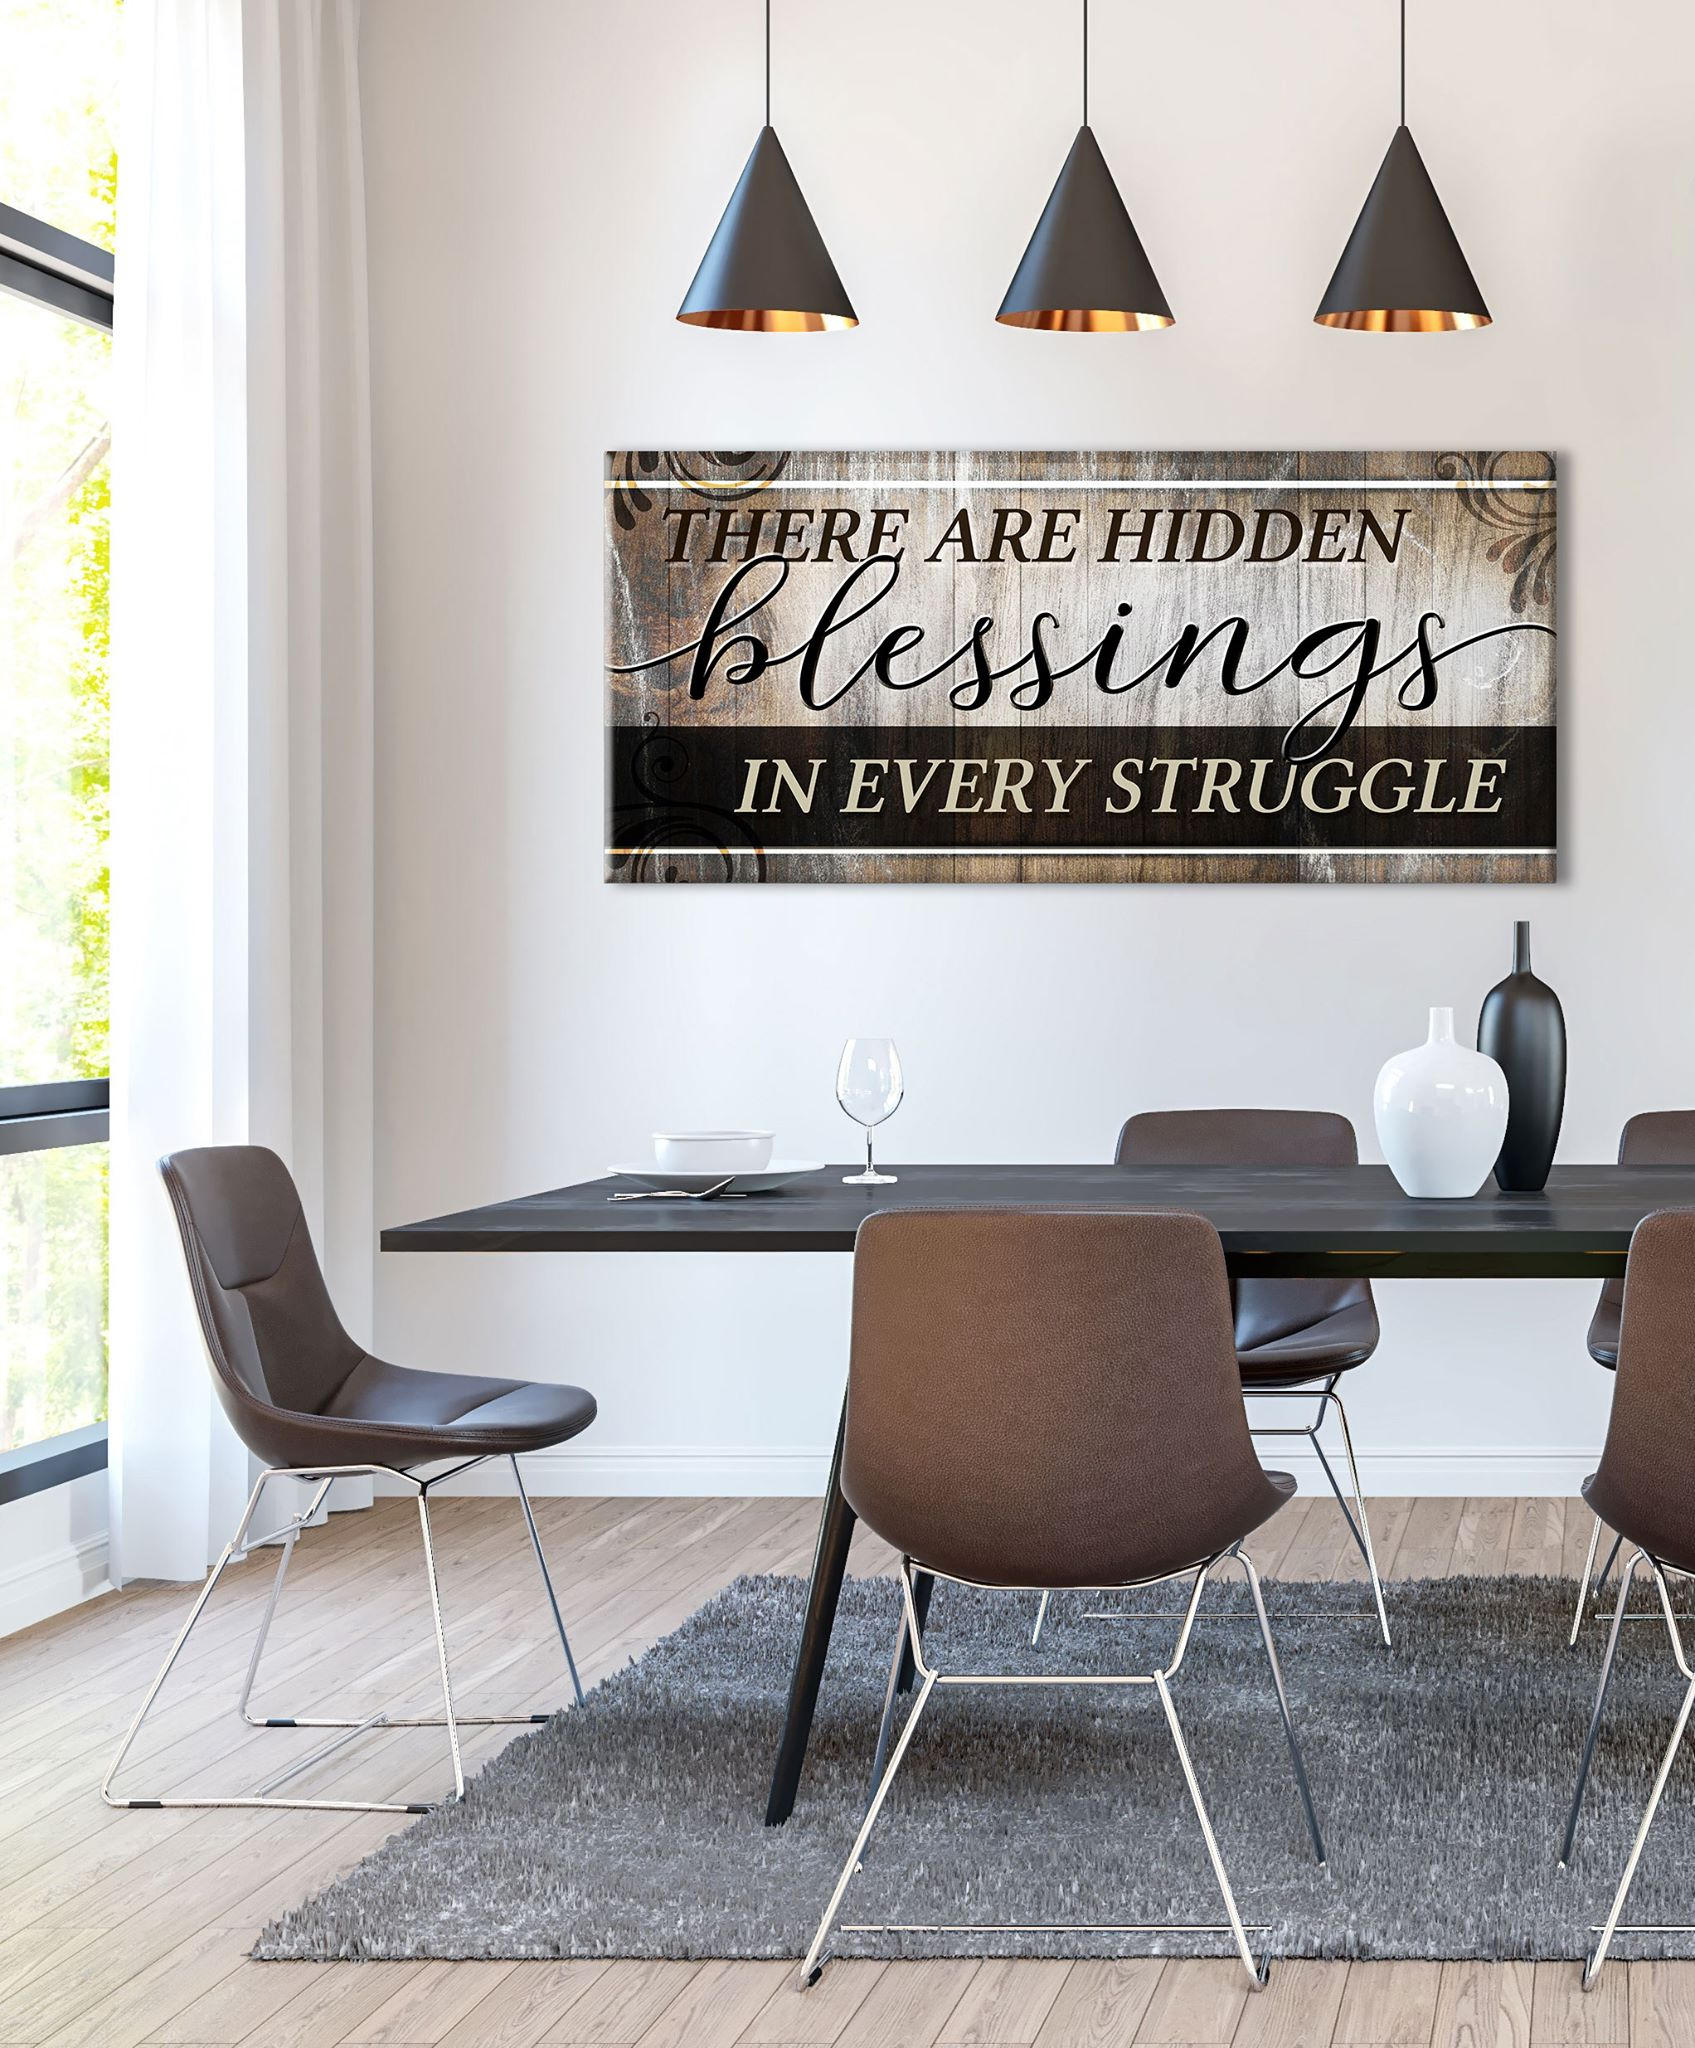 Christian Wall Art: There are Hidden Blessings in every struggle  (Wood Frame Ready To Hang)